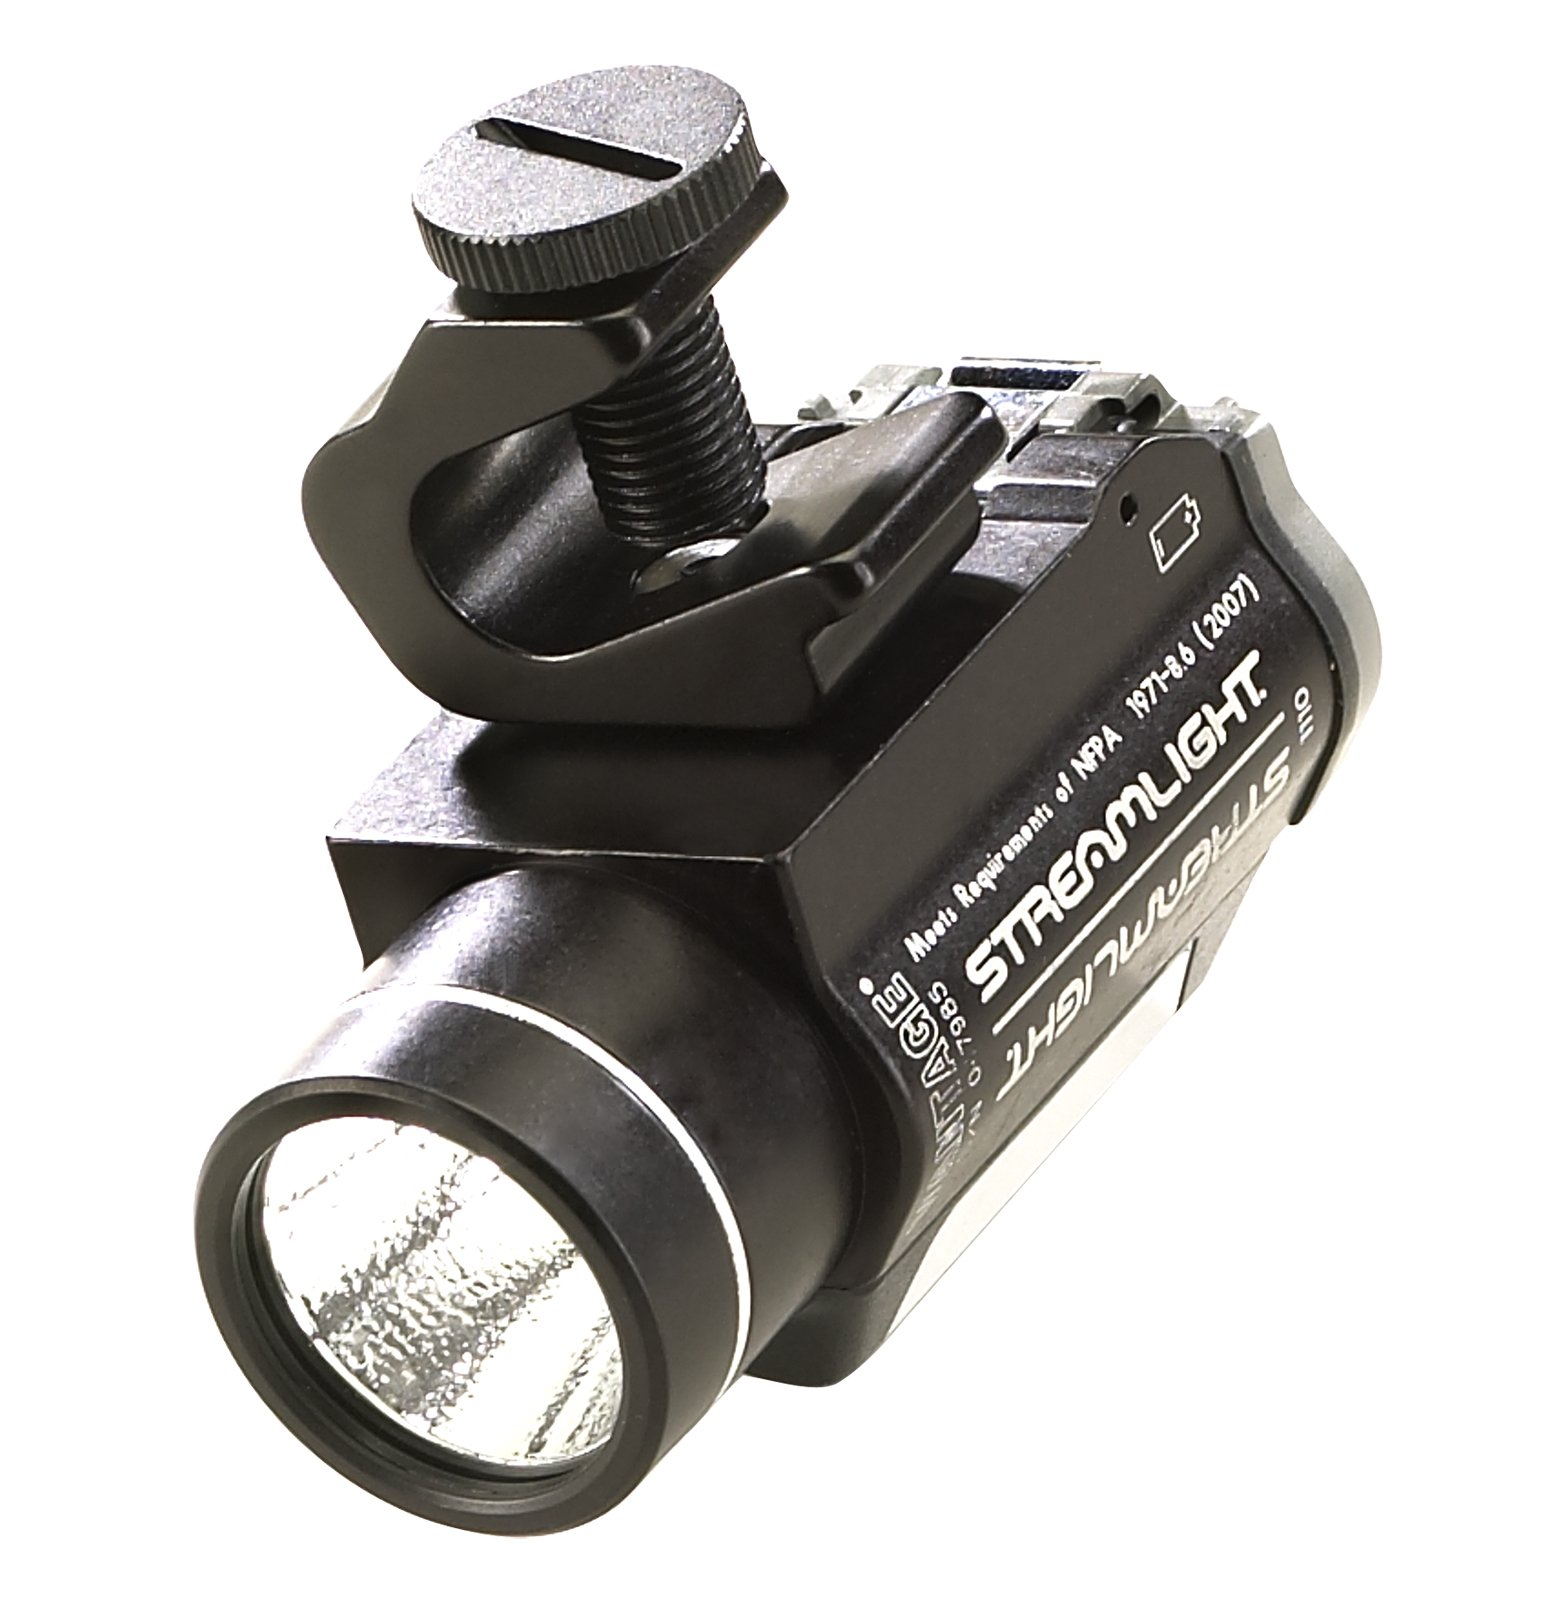 Streamlight 69140 Vantage LED Tactical Helmet Mounted Flashlight